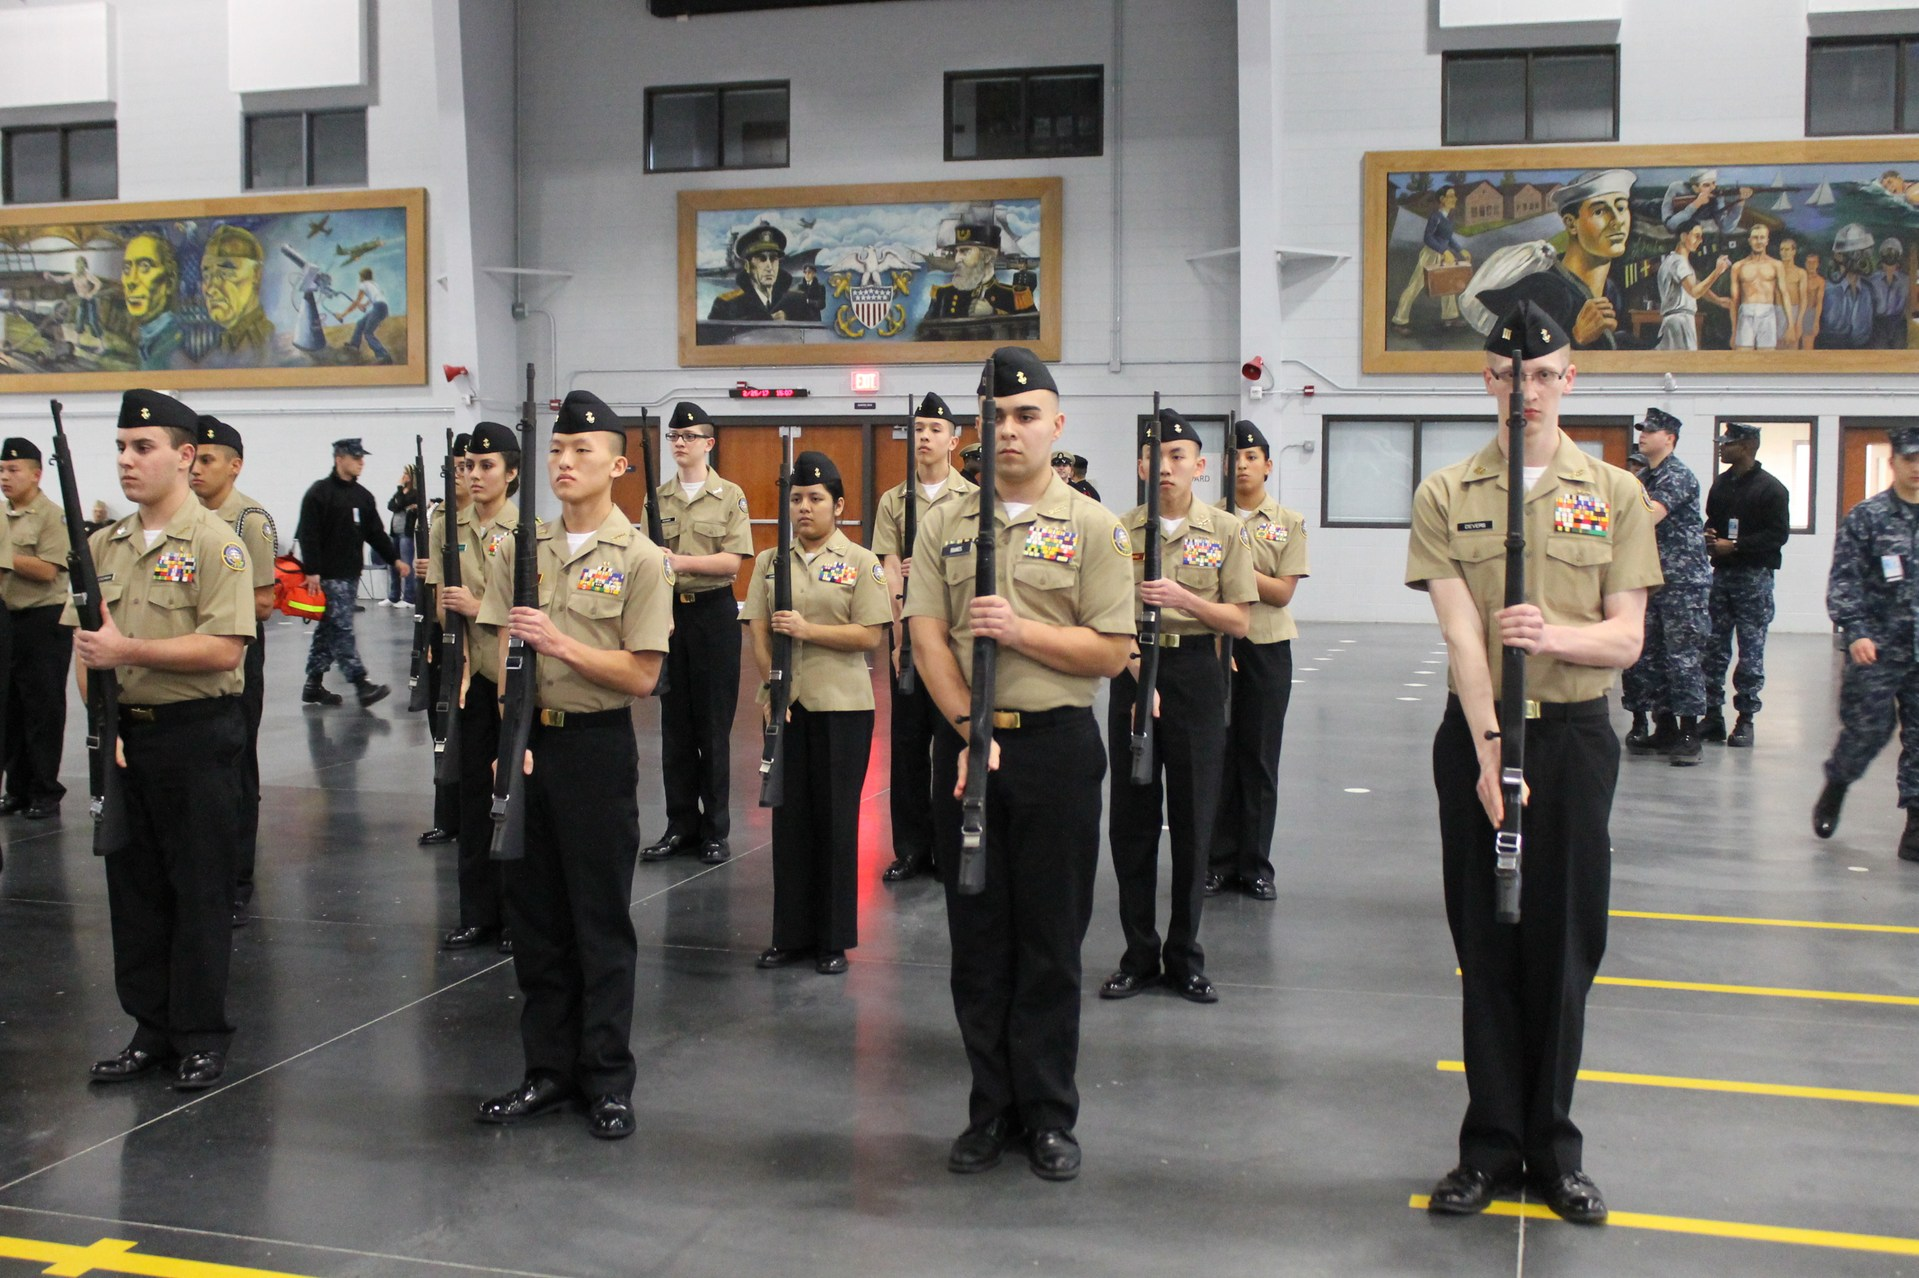 exhibition drill team